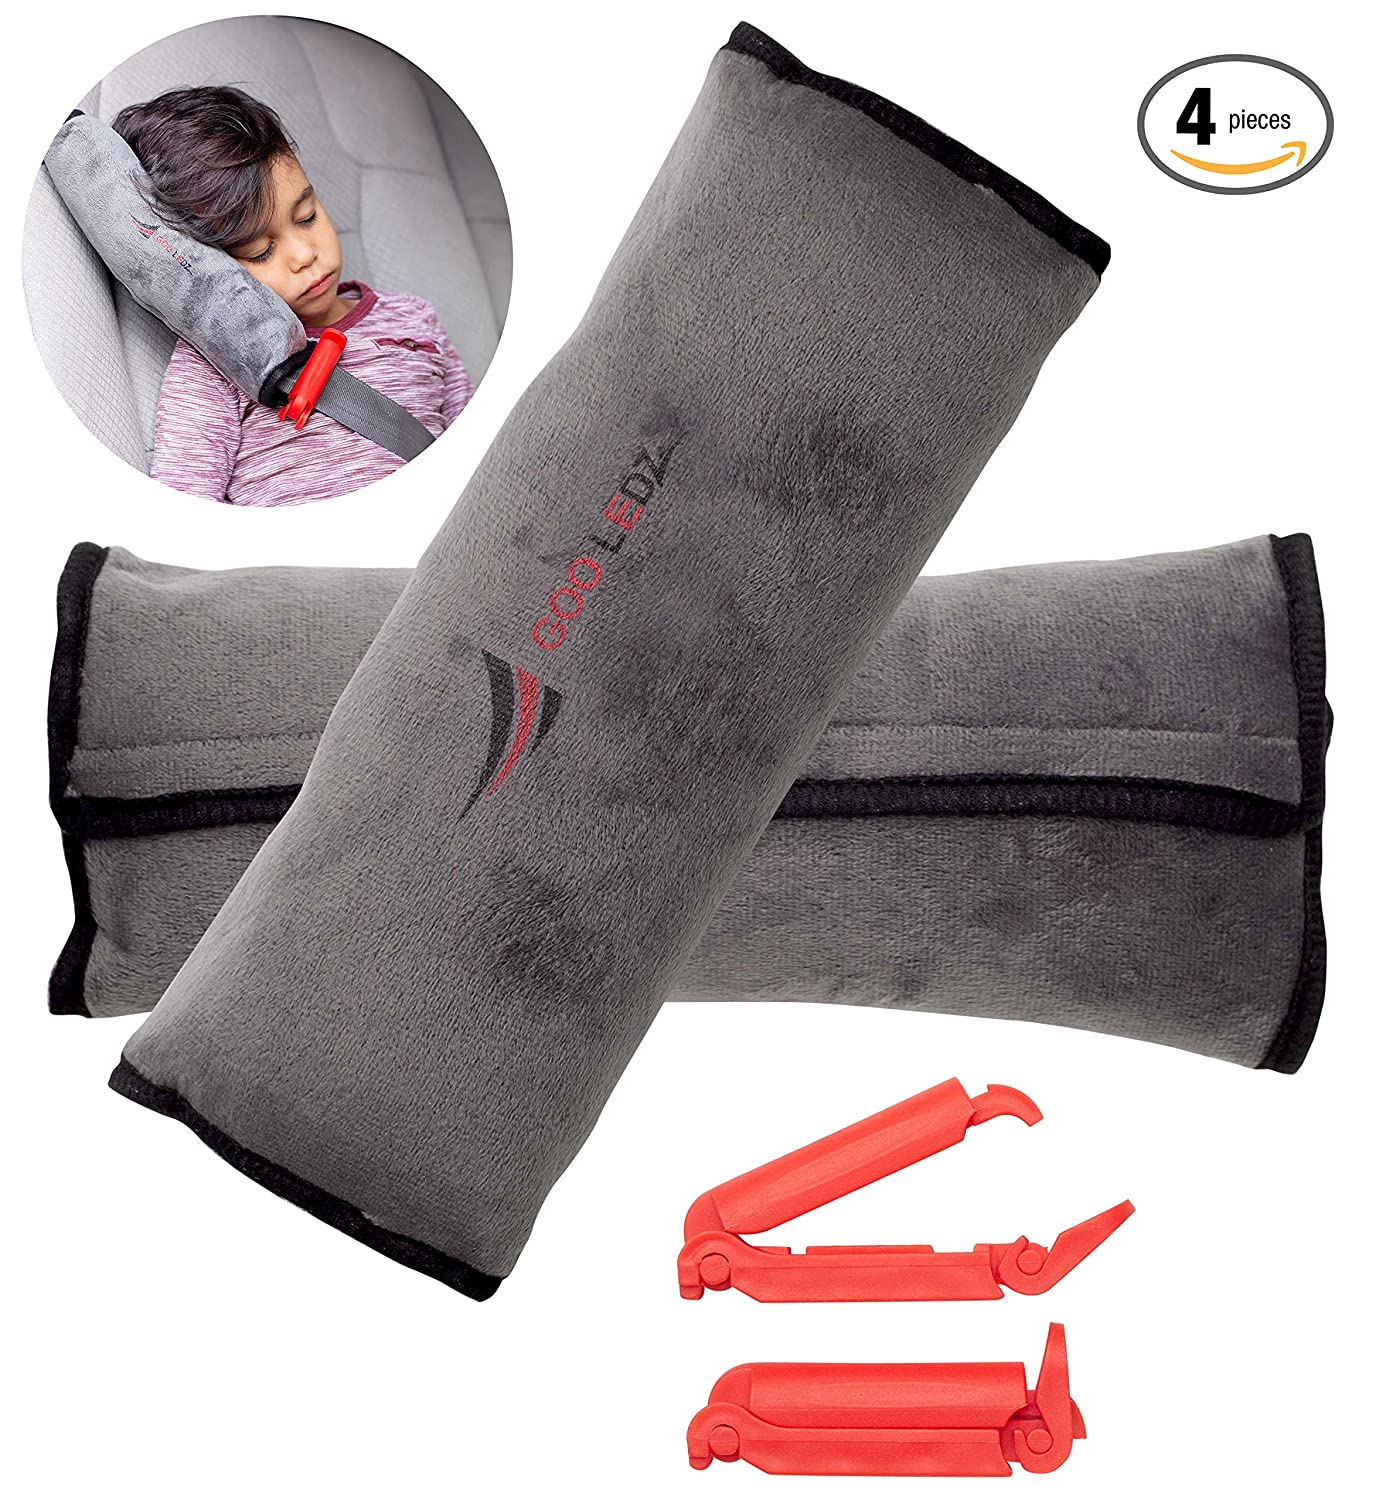 Seatbelt Pillow: 2-Piece Soft Plush Car Seat Belt Cover + 2 Red Seatbelt Clips Set| Safety Belt Protector Pad for Kids|Washable Seatbelt Headrest for Shoulder & Neck Support| Top Gifting Idea Goo Ledz